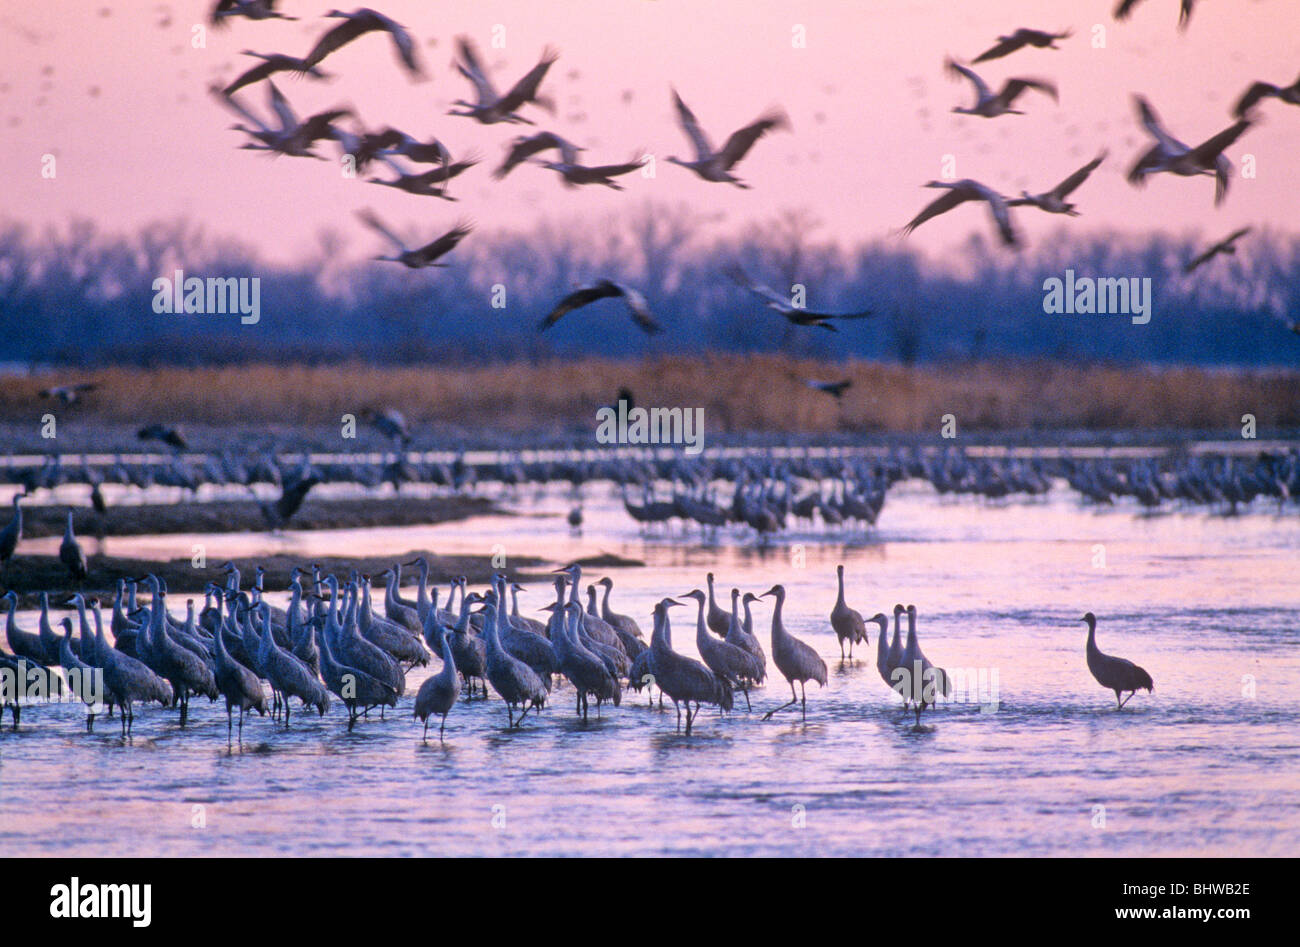 Nebraska Usa Stock Photos & Nebraska Usa Stock Images - Alamy